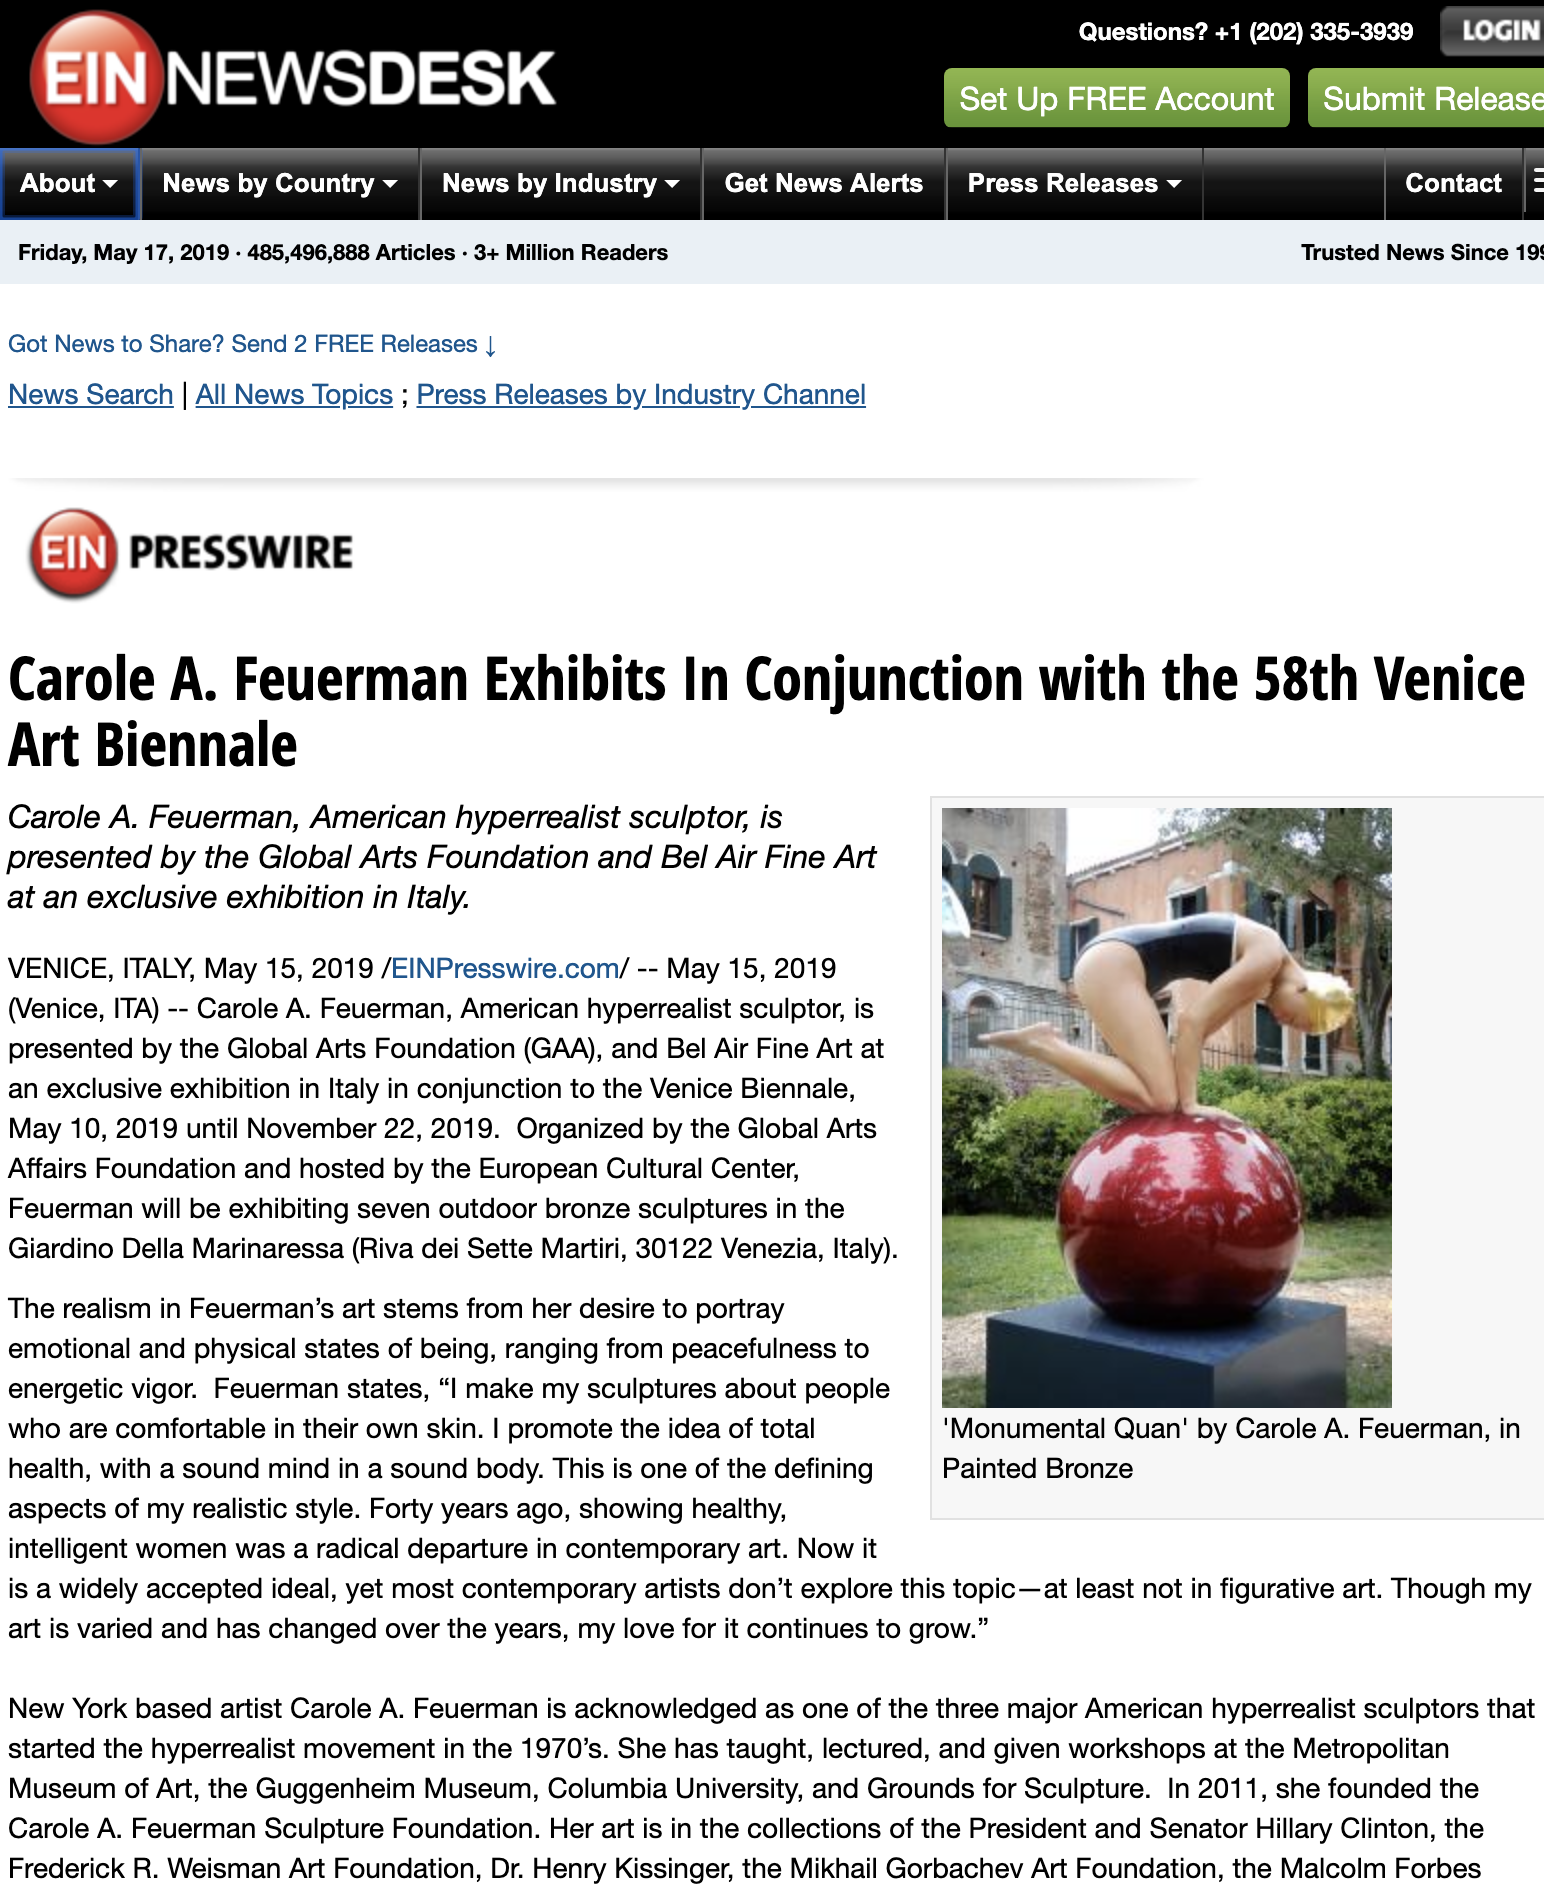 Carole A. Feuerman Exhibits In Conjunction with the 58th Venice Art Biennale